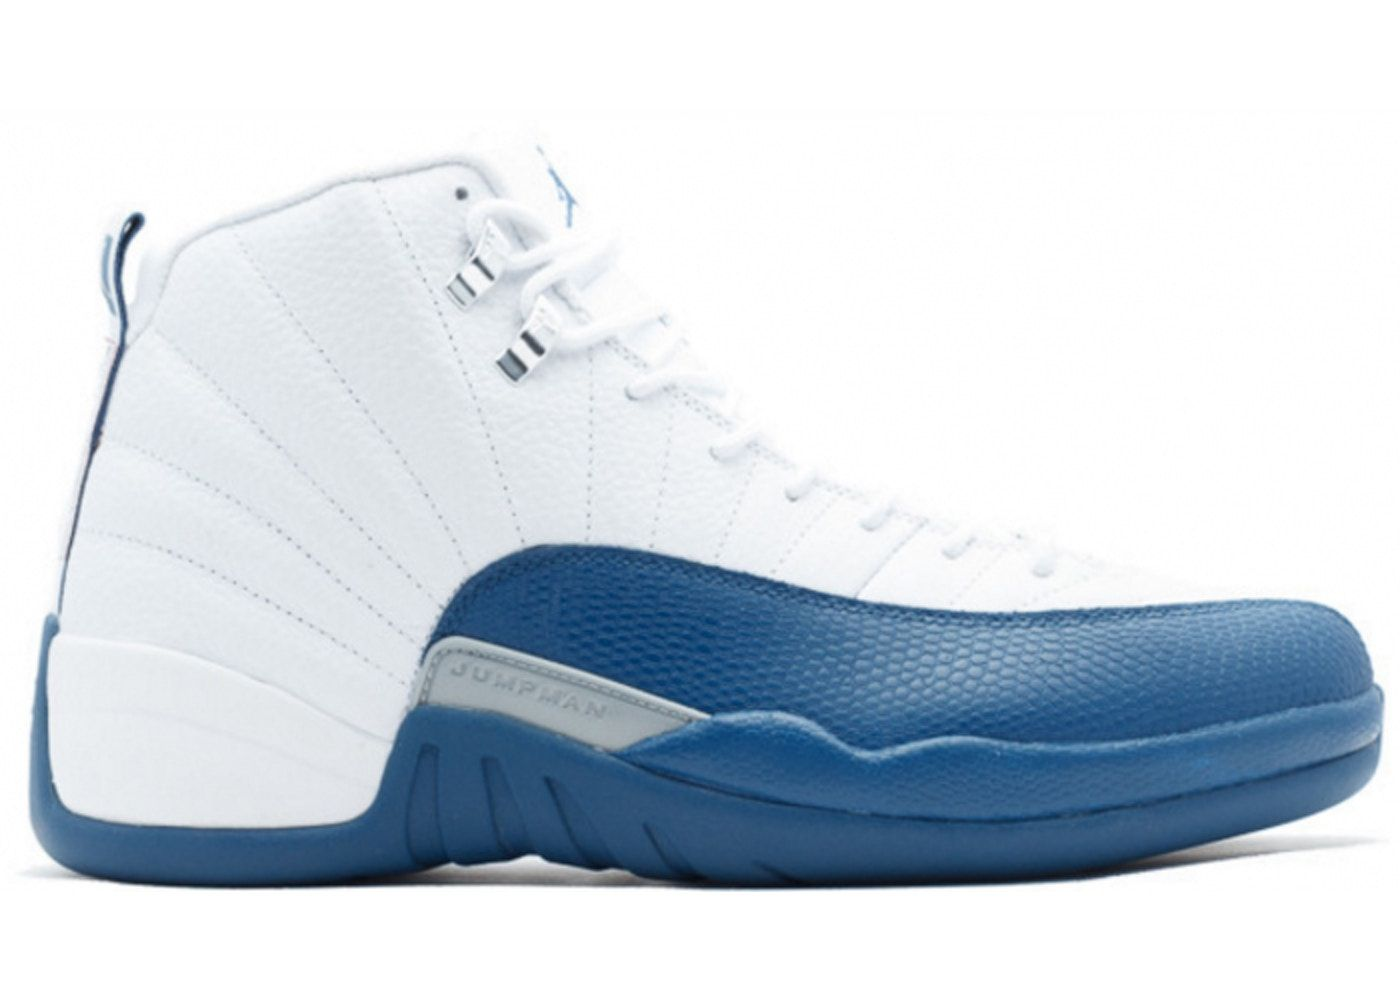 Check out the Jordan 12 Retro French Blue (2016) available on StockX f356700e6